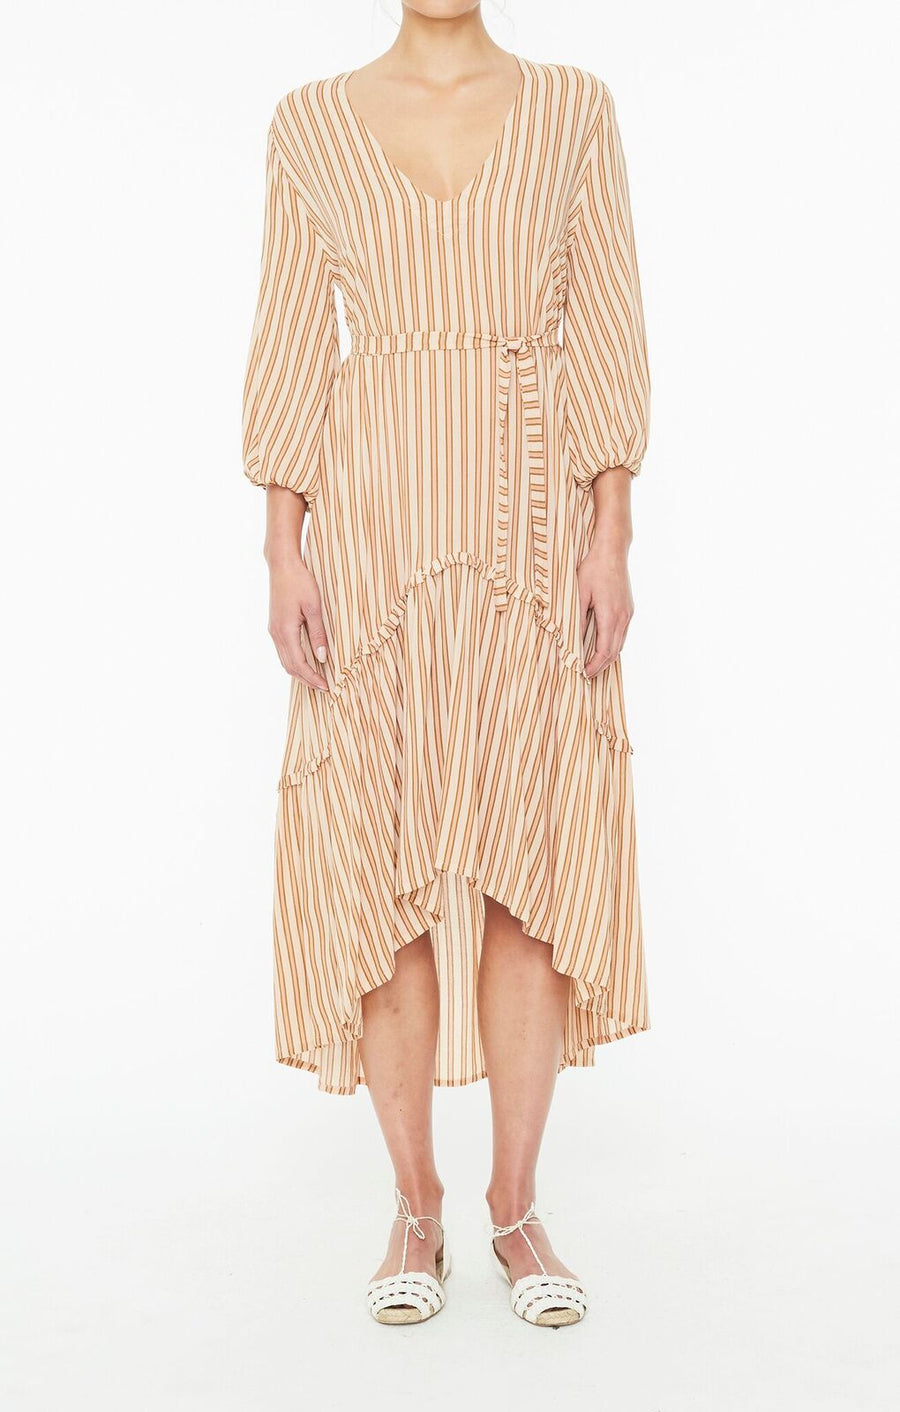 FAITHFULL THE BRAND - Matilda Peasant Dress - Almeria Stripe